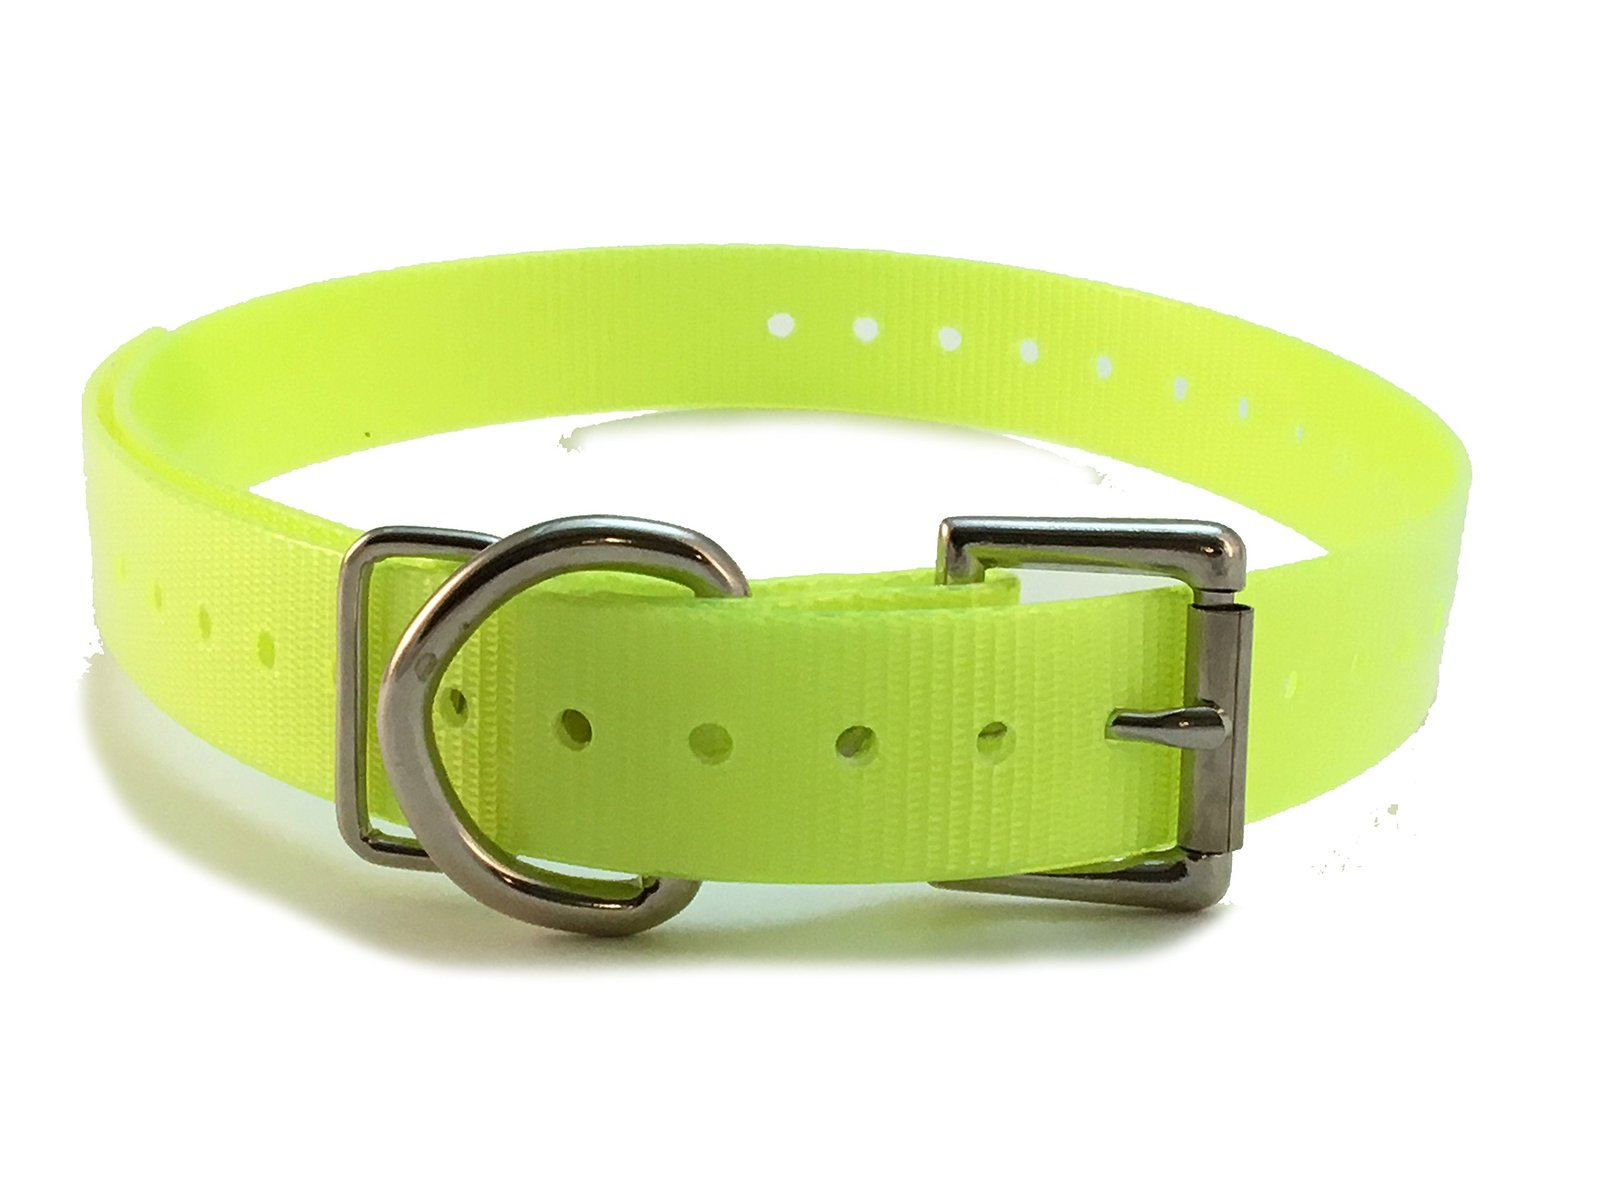 E Collar Compatible 3/4' High Flex Waterproof Roller Buckle Dog Strap, Neon Yell